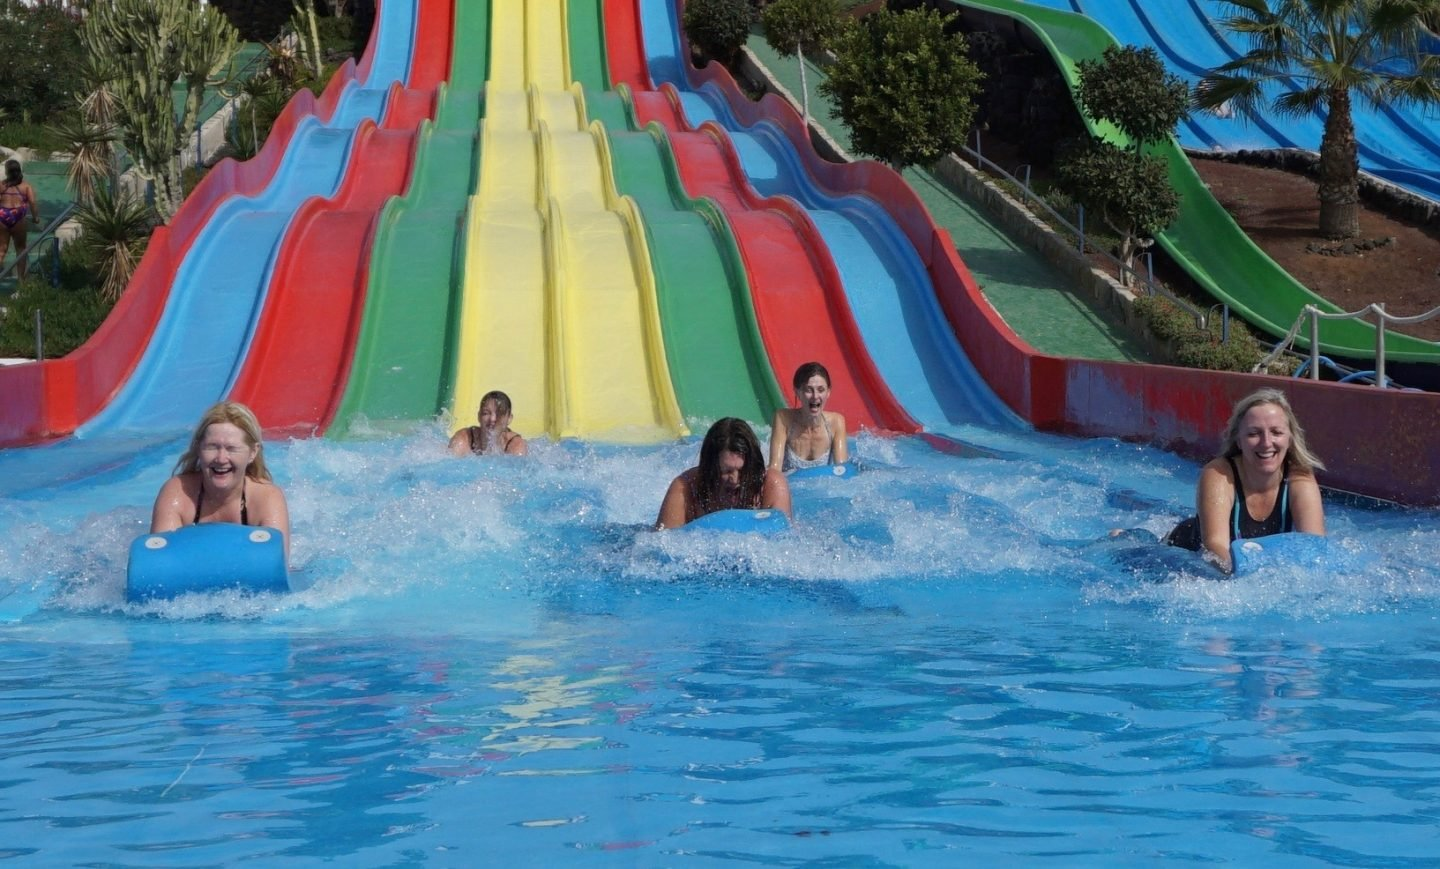 Slide at the Aqua Park in Lanzarote